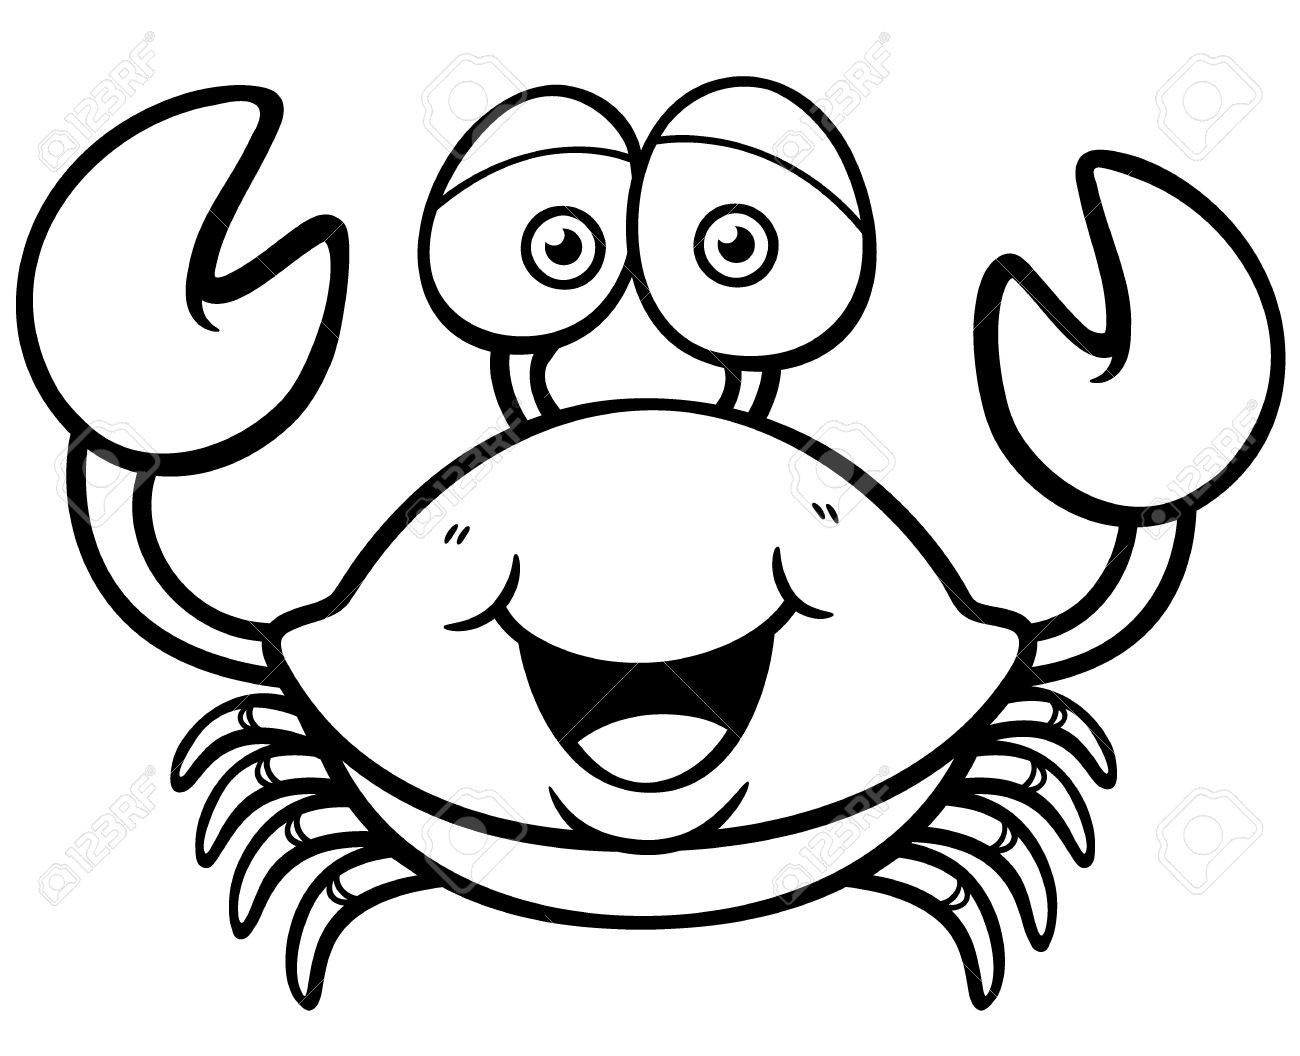 Crab black and white clipart 5 » Clipart Station.